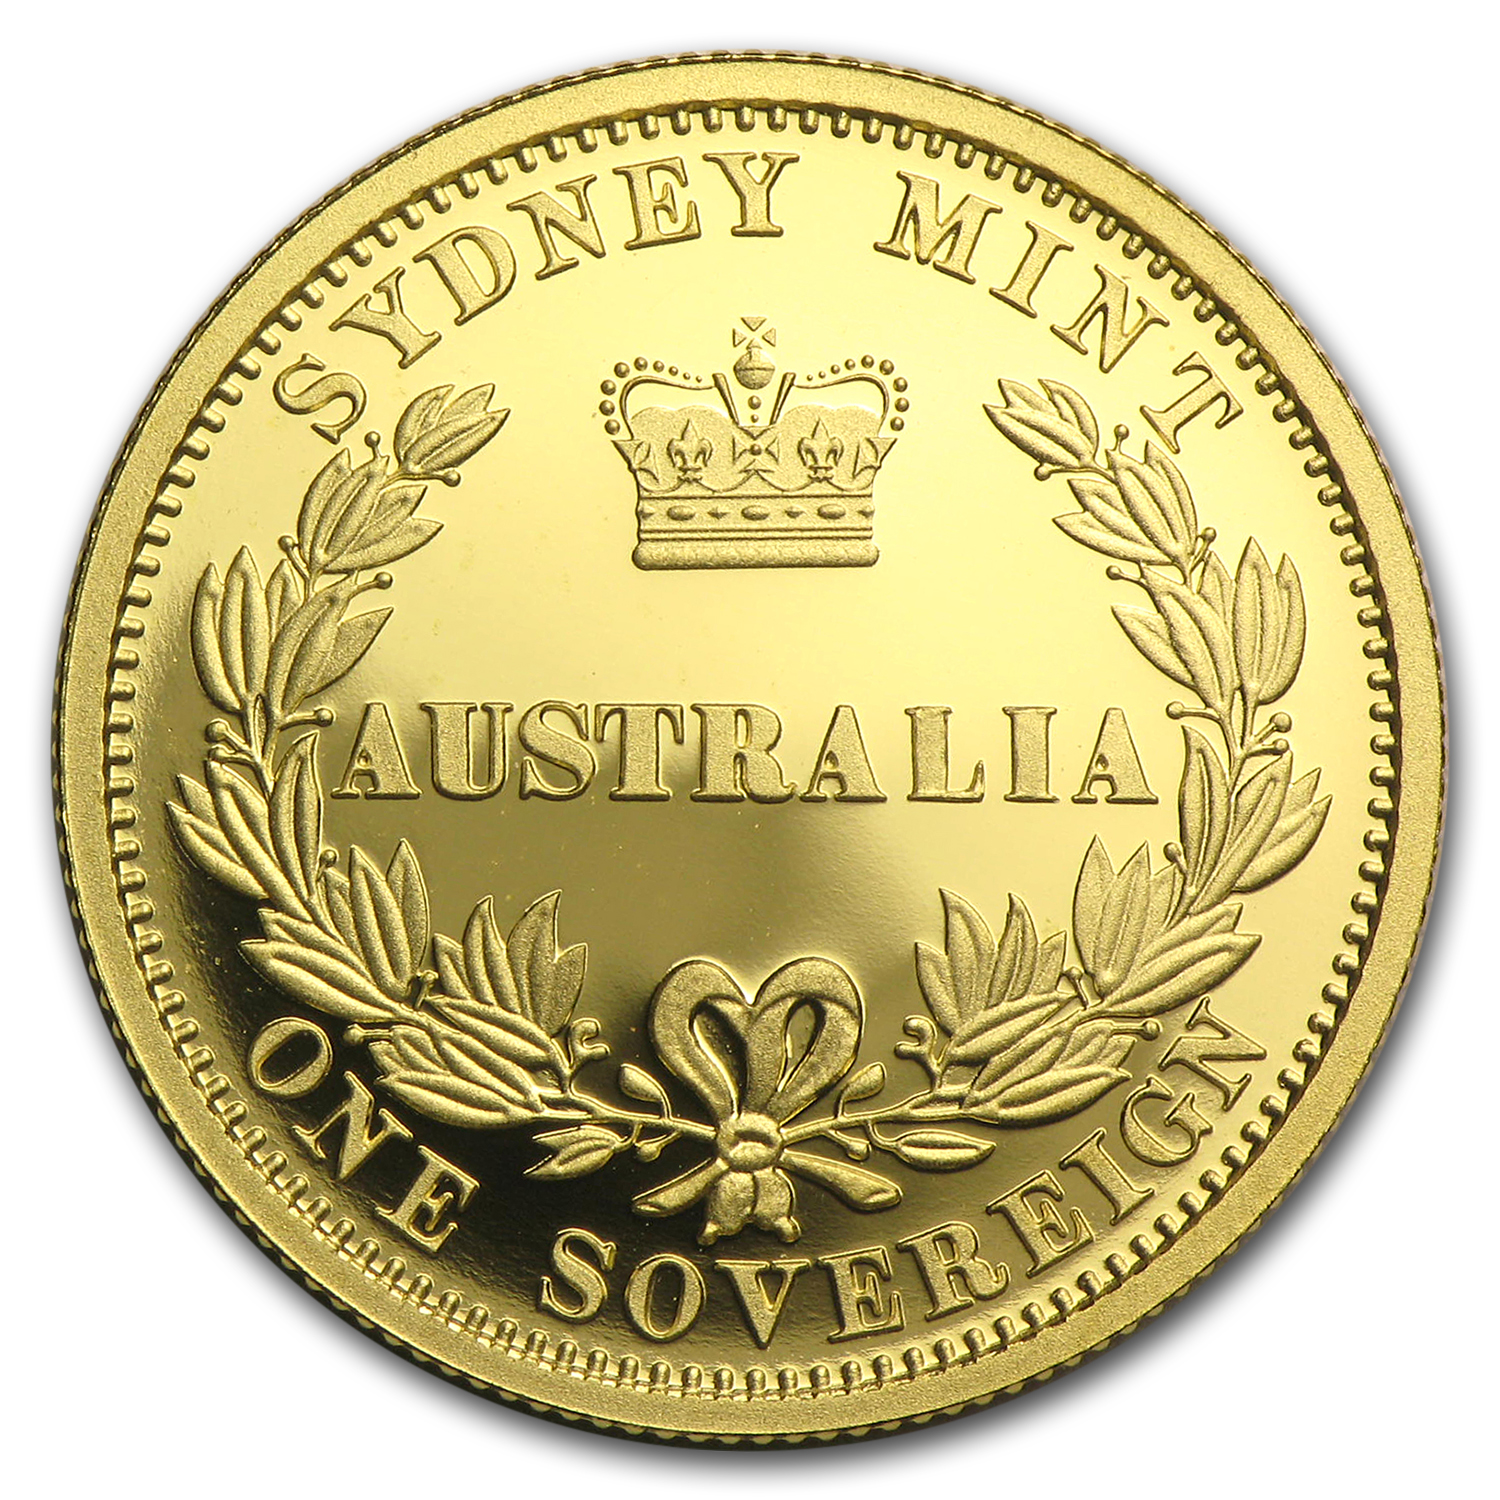 2005 Australia Gold $25 Proof Sovereign